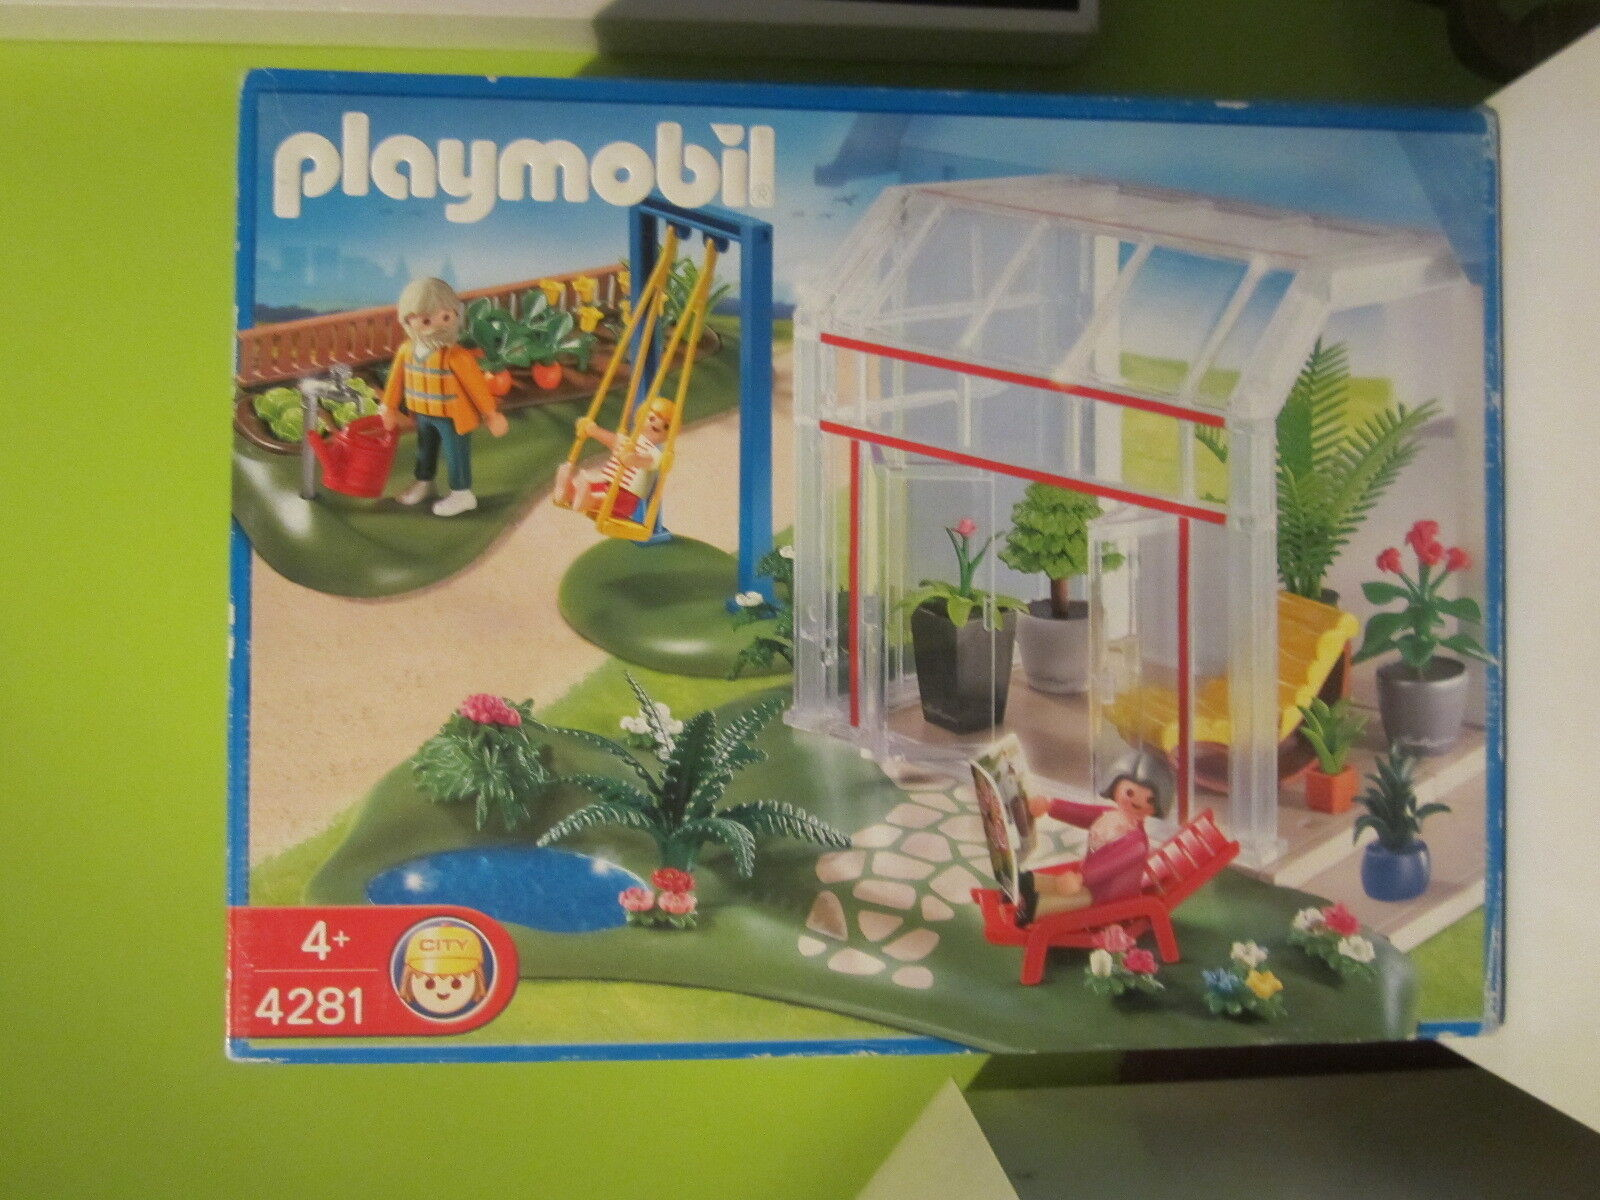 SET PLAYMOBIL REFERENCIA 4281 INVERNADERO